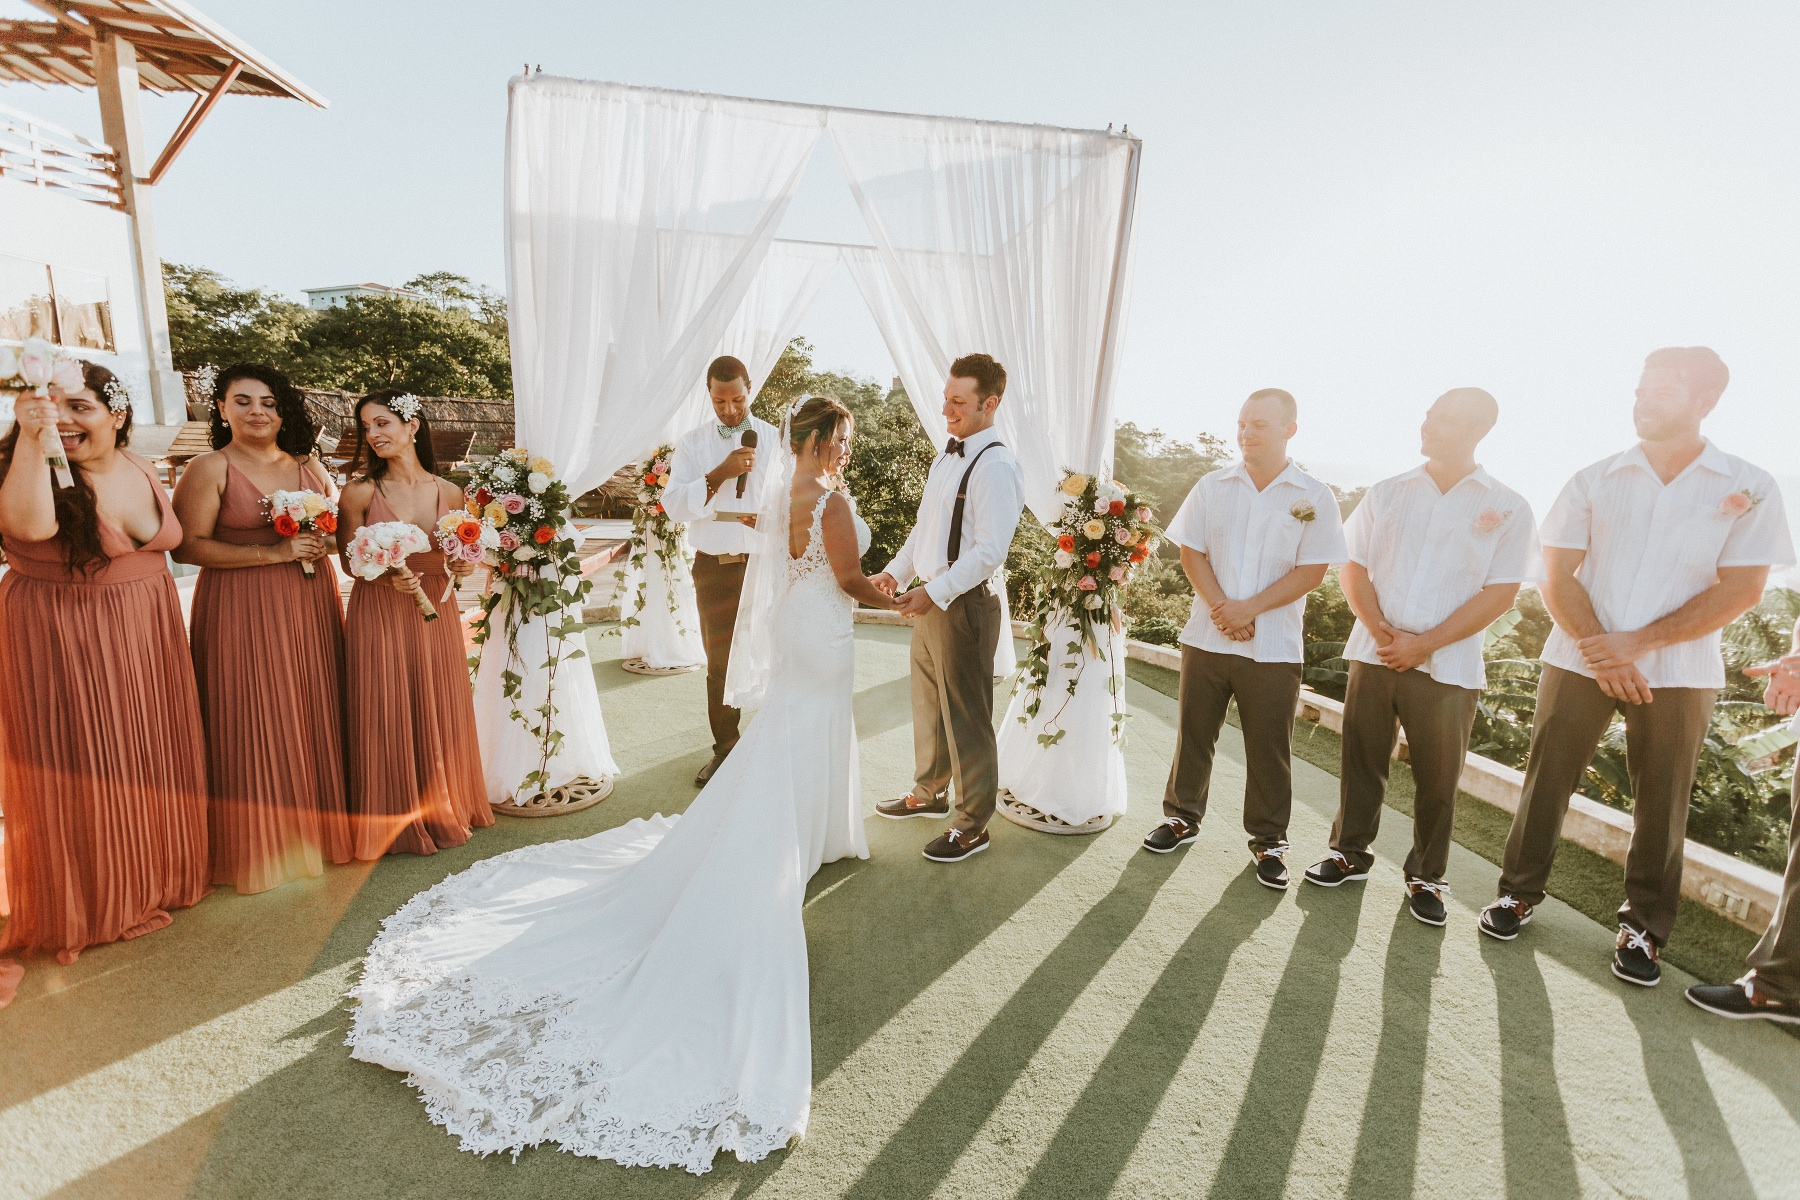 Destination wedding at the beach in Nicaragua Costa Rica